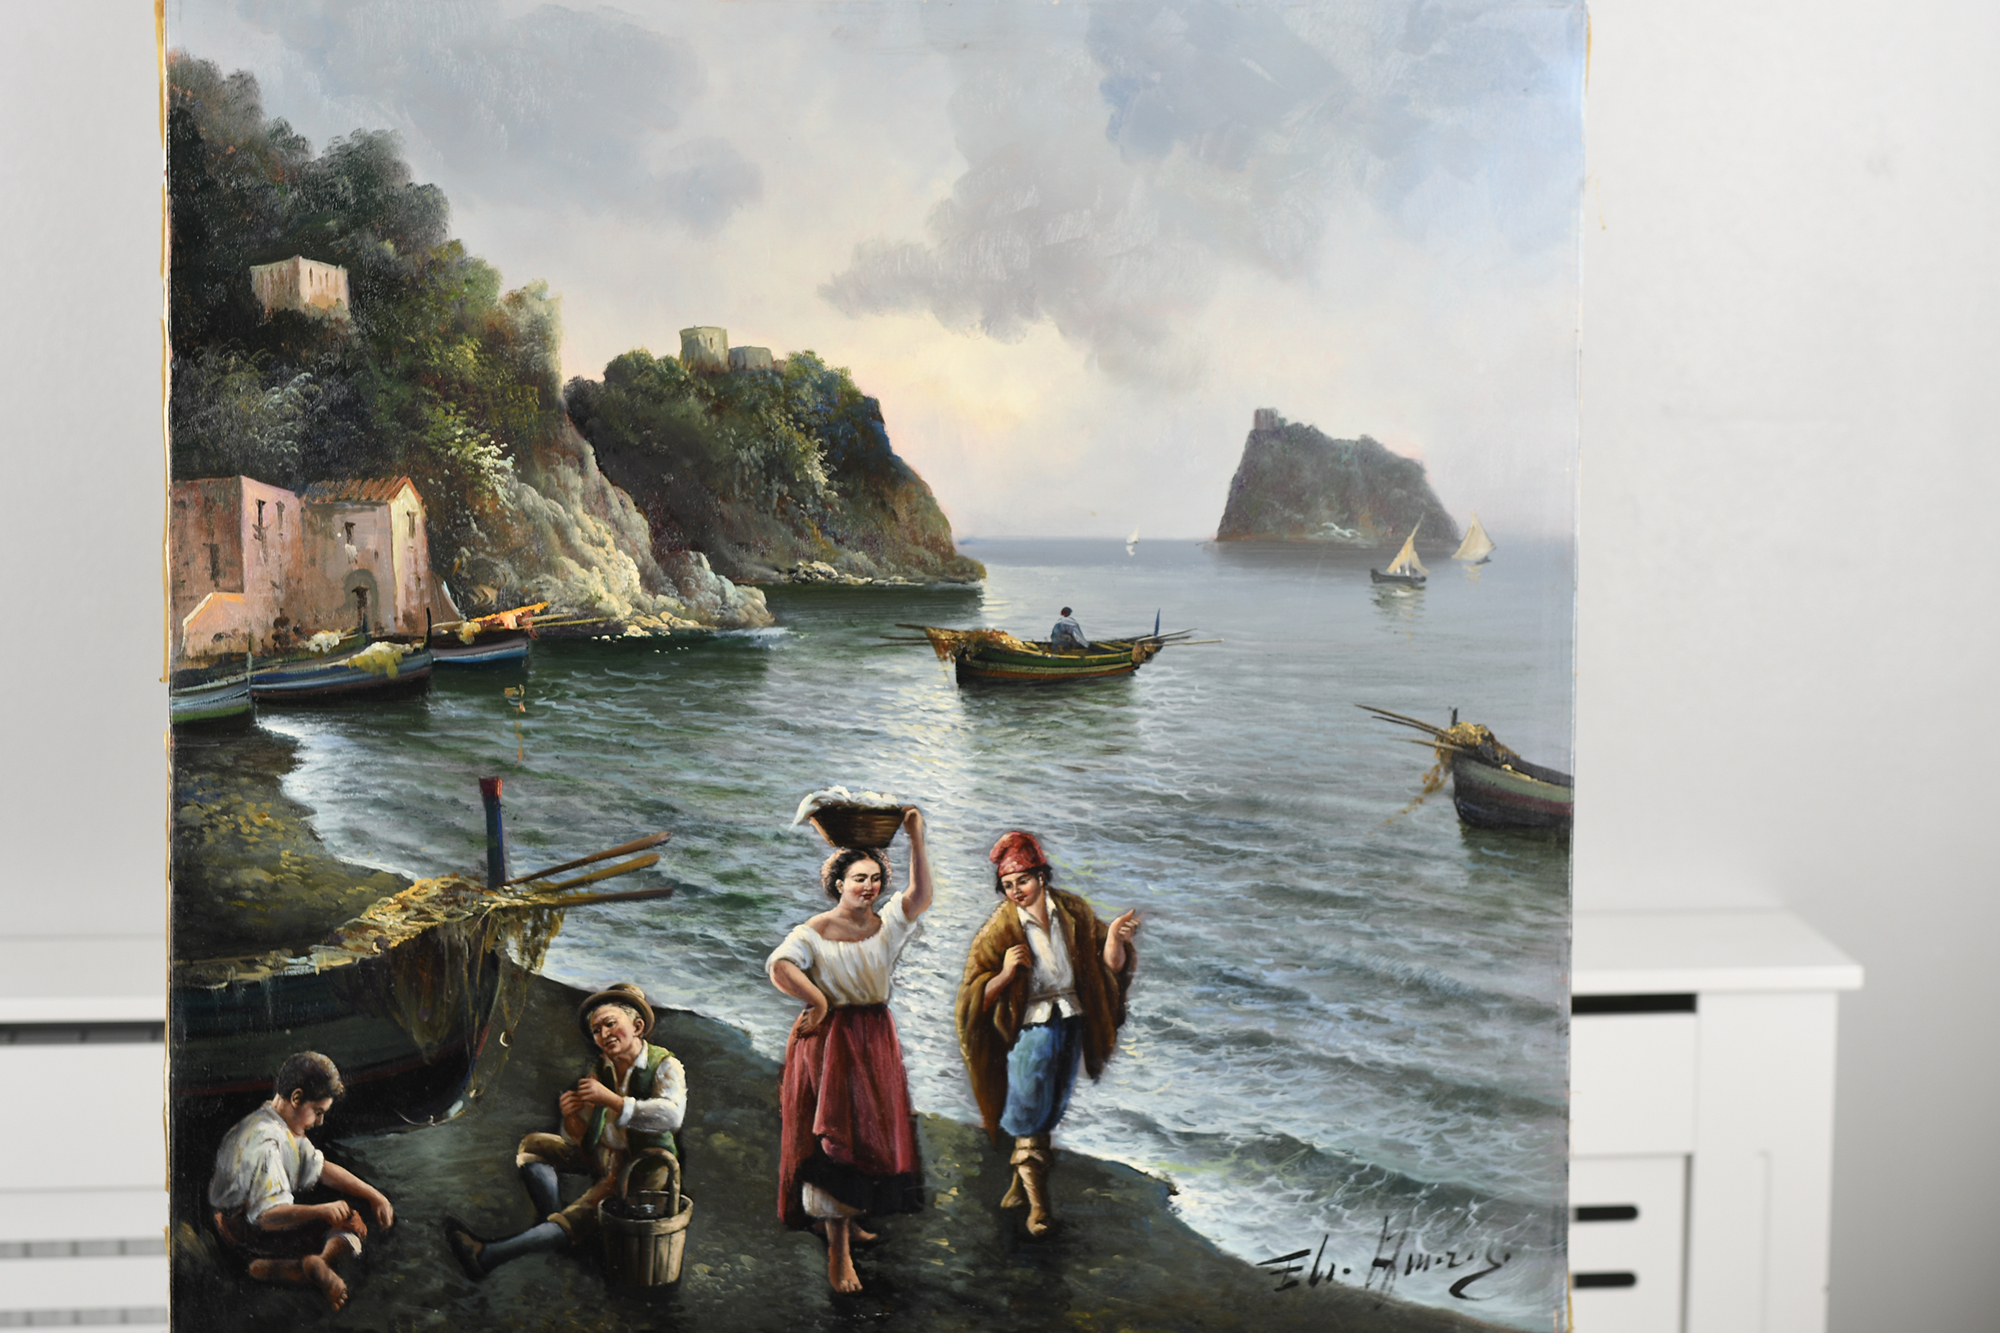 Oil on Canvas by Italian artist Amoroso - Image 5 of 11